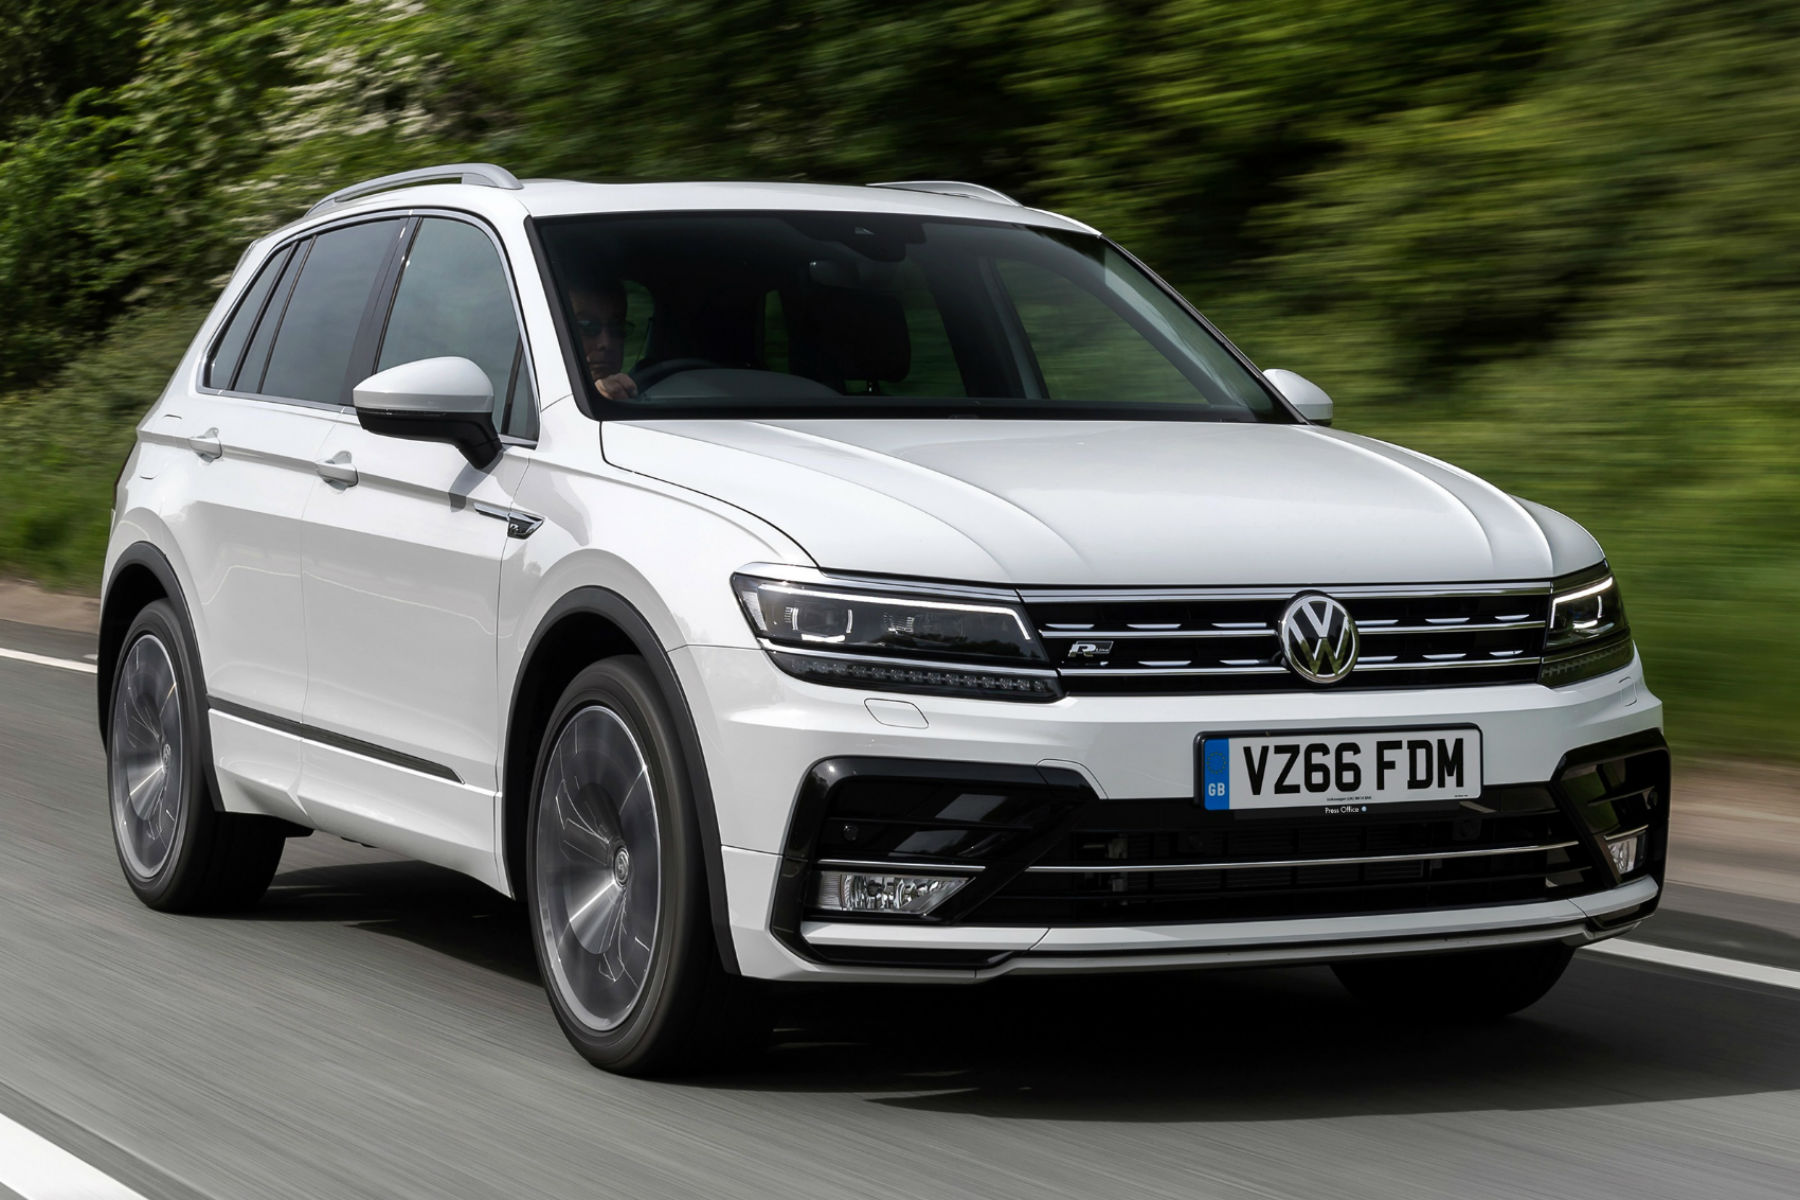 buy a new volkswagen tiguan for 229 a month motoring research. Black Bedroom Furniture Sets. Home Design Ideas